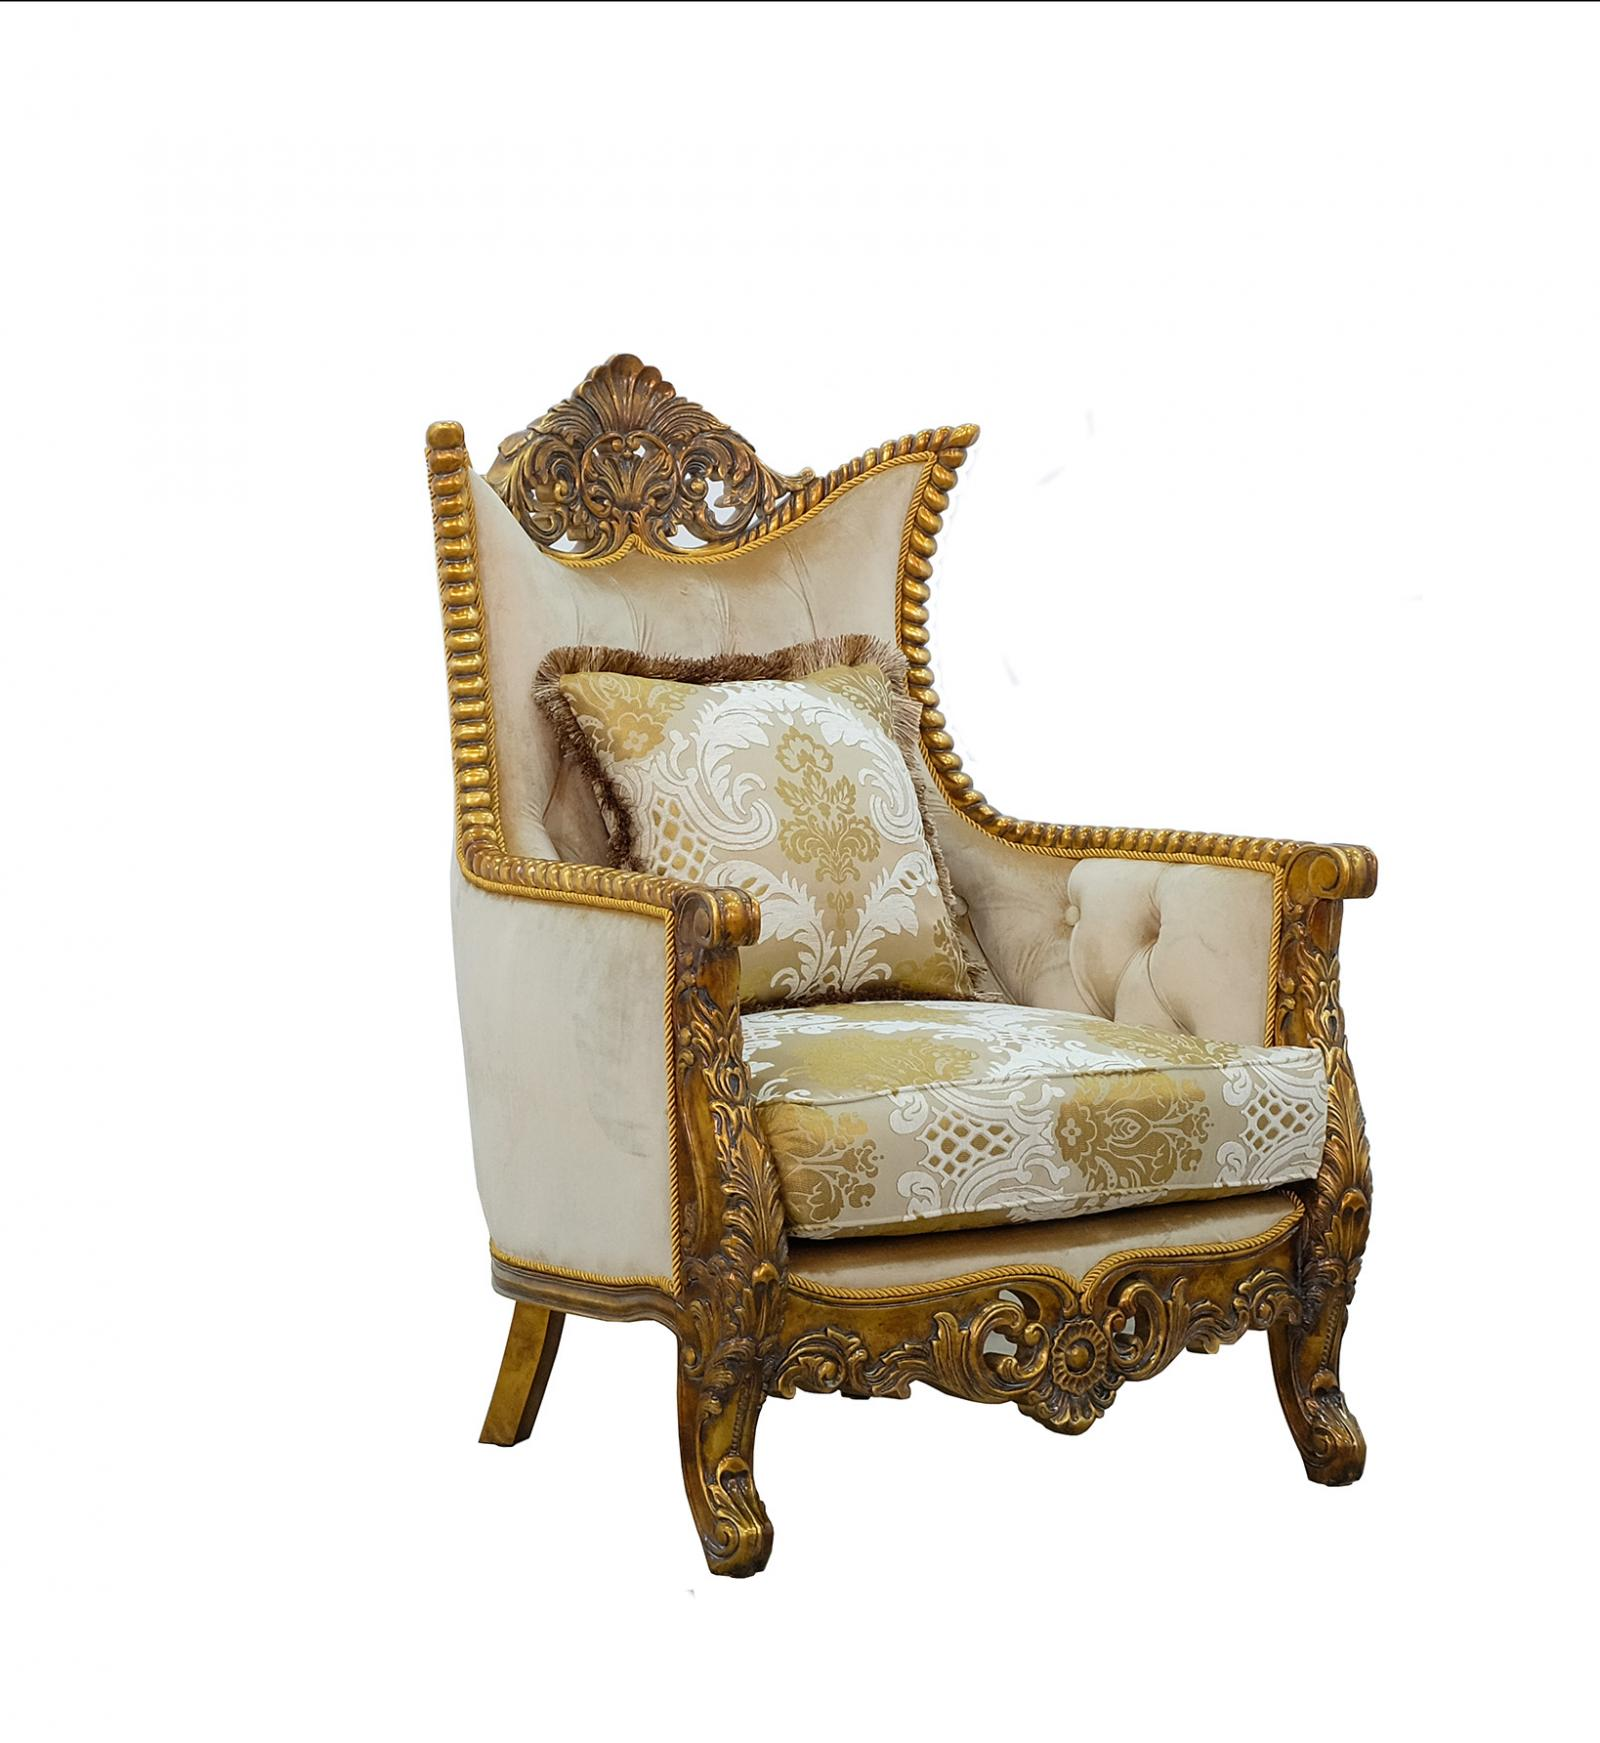 Classic  Traditional Beige  Gold  Antique Wood  Solid Hardwood and Fabric Arm Chair EUROPEAN FURNITURE 31055-C